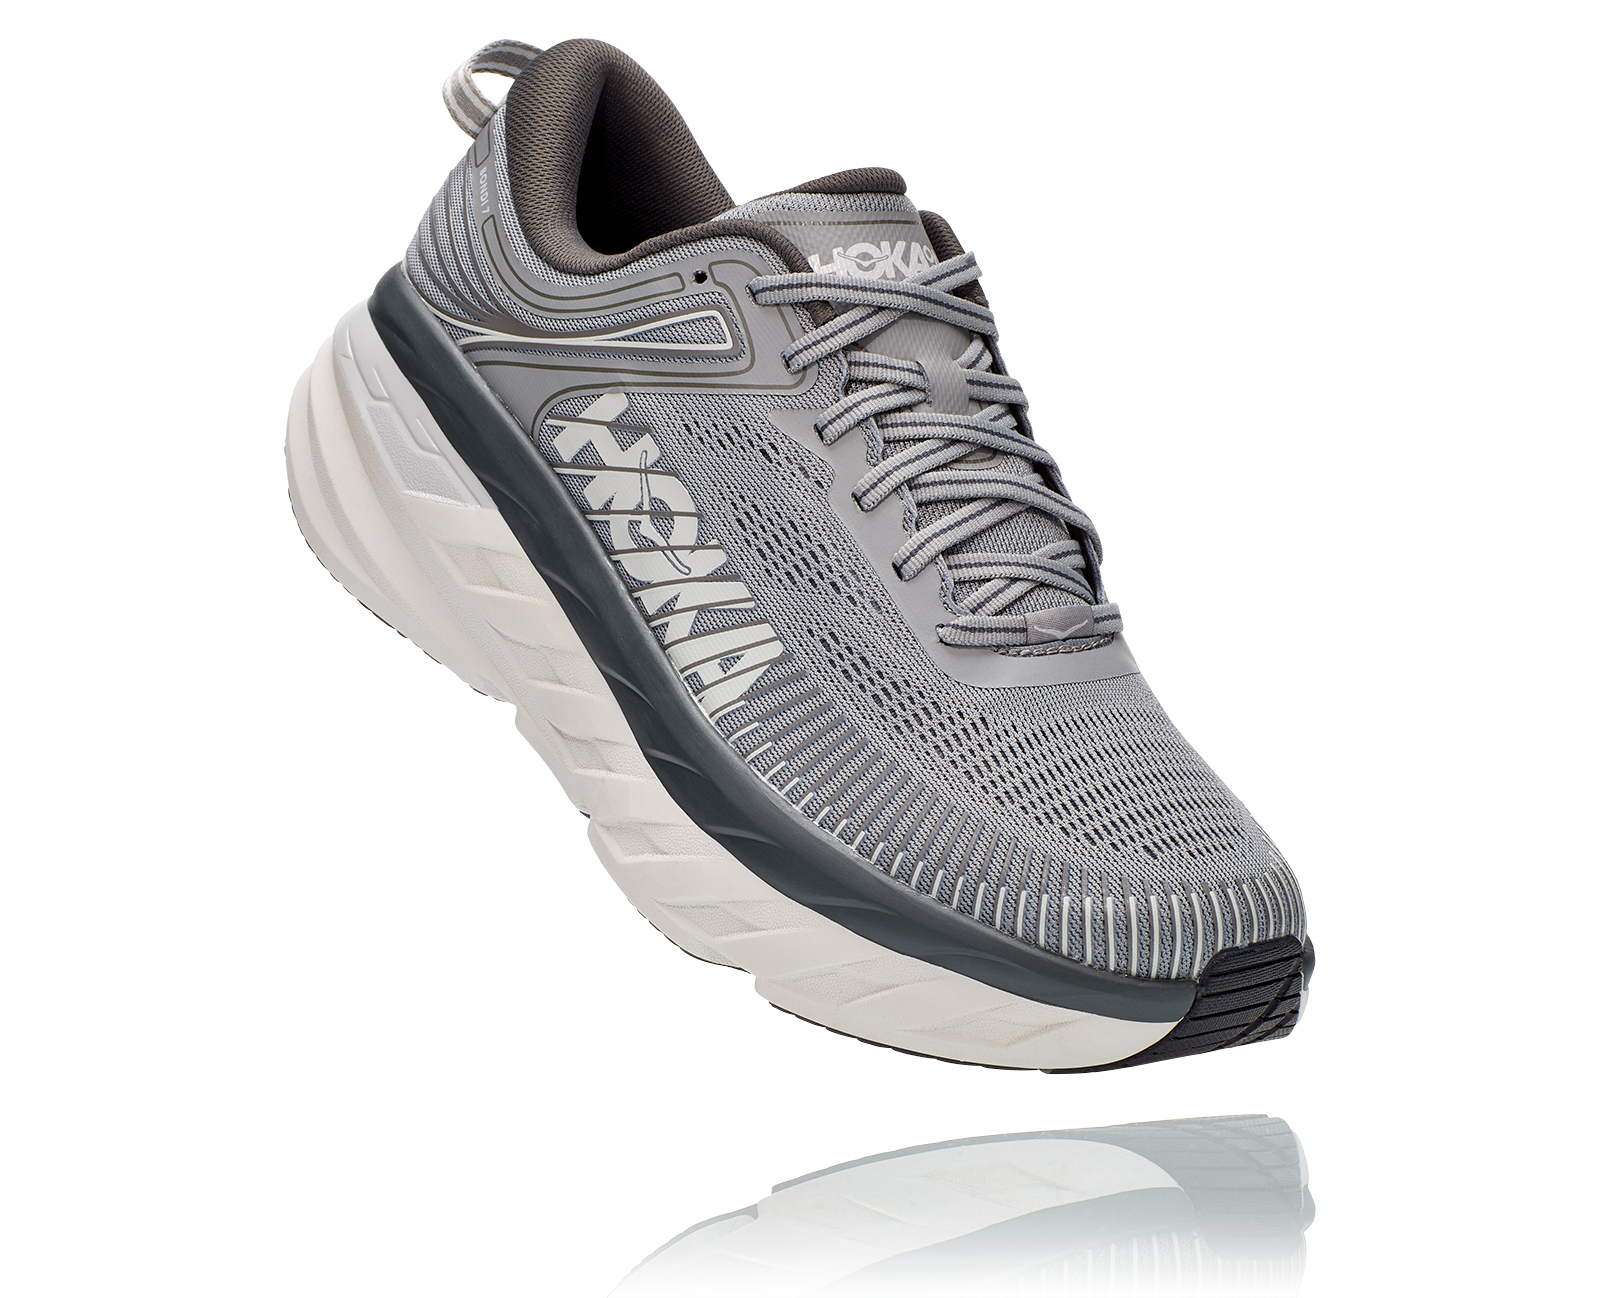 Hoka One One Mens Bondi 7